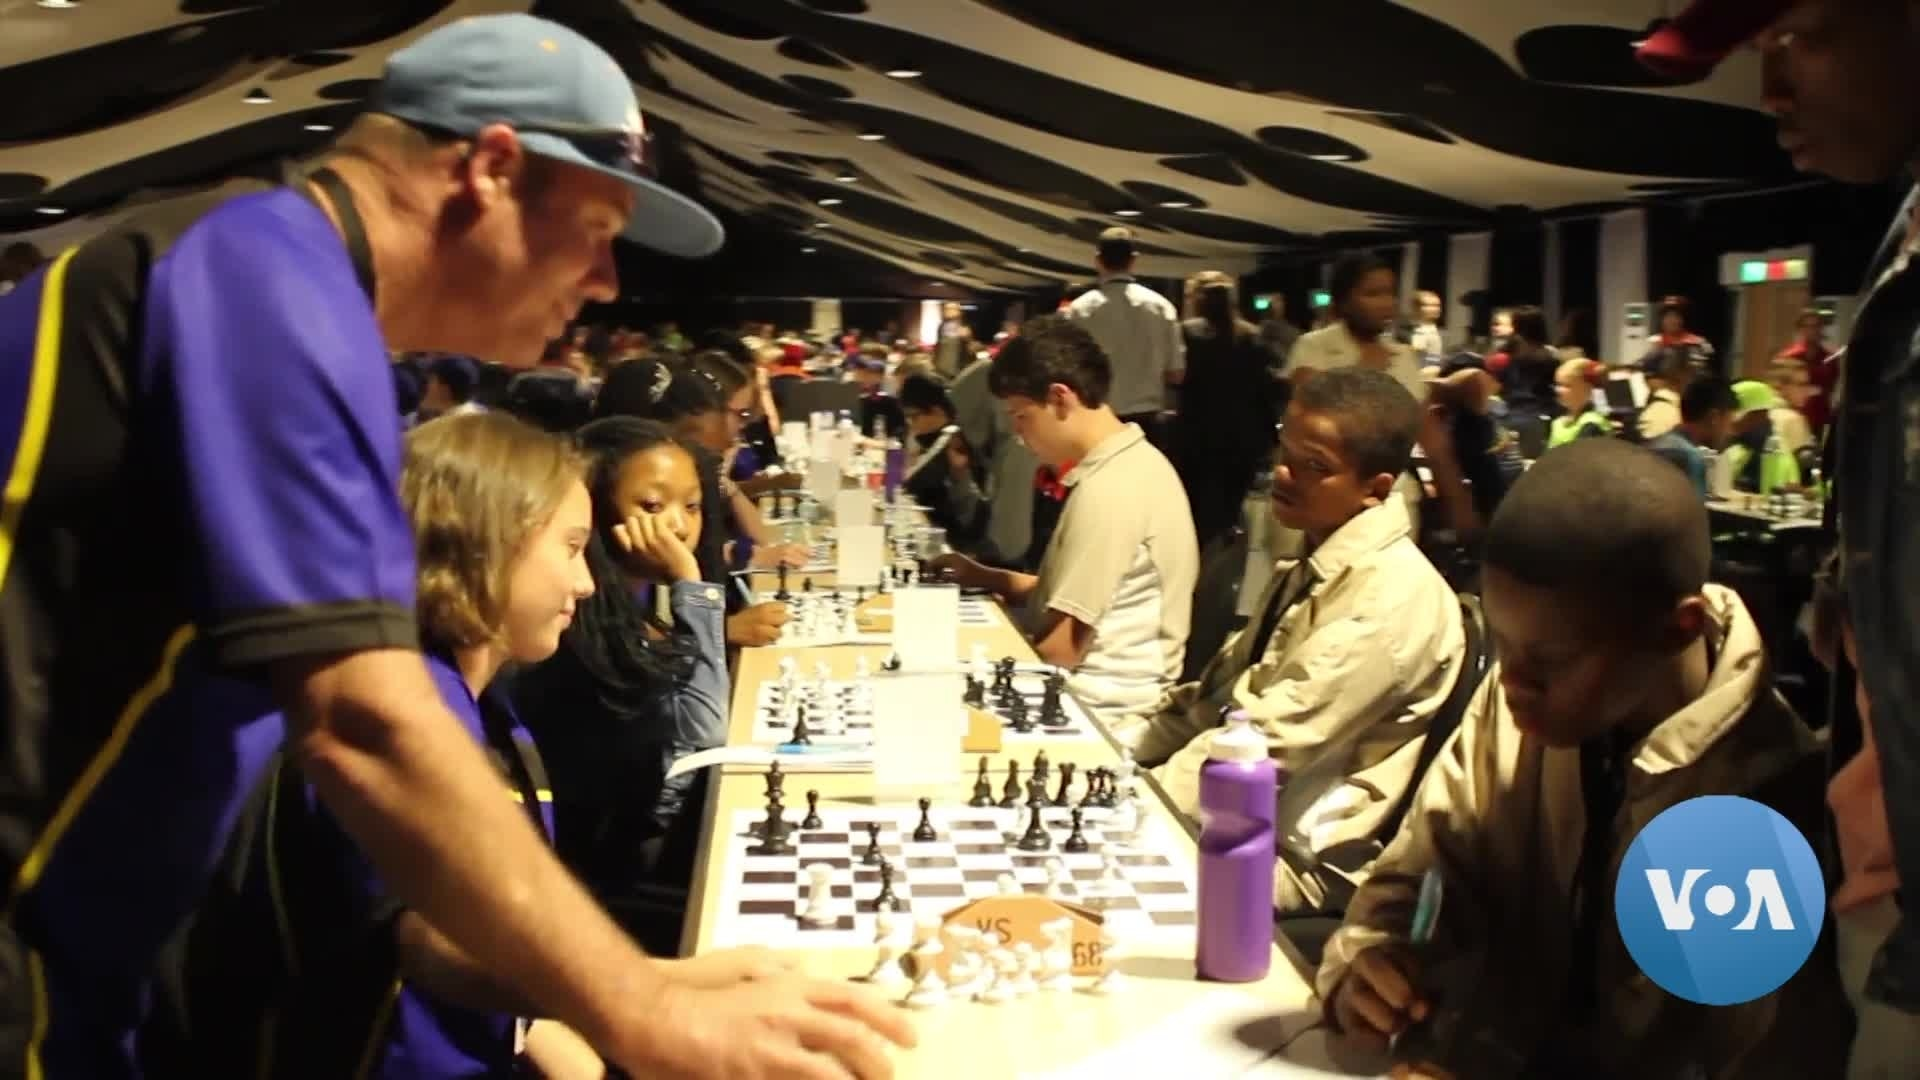 Crisis in South Africa's Chess Program Cuts to Core of Issues in Rainbow Nation